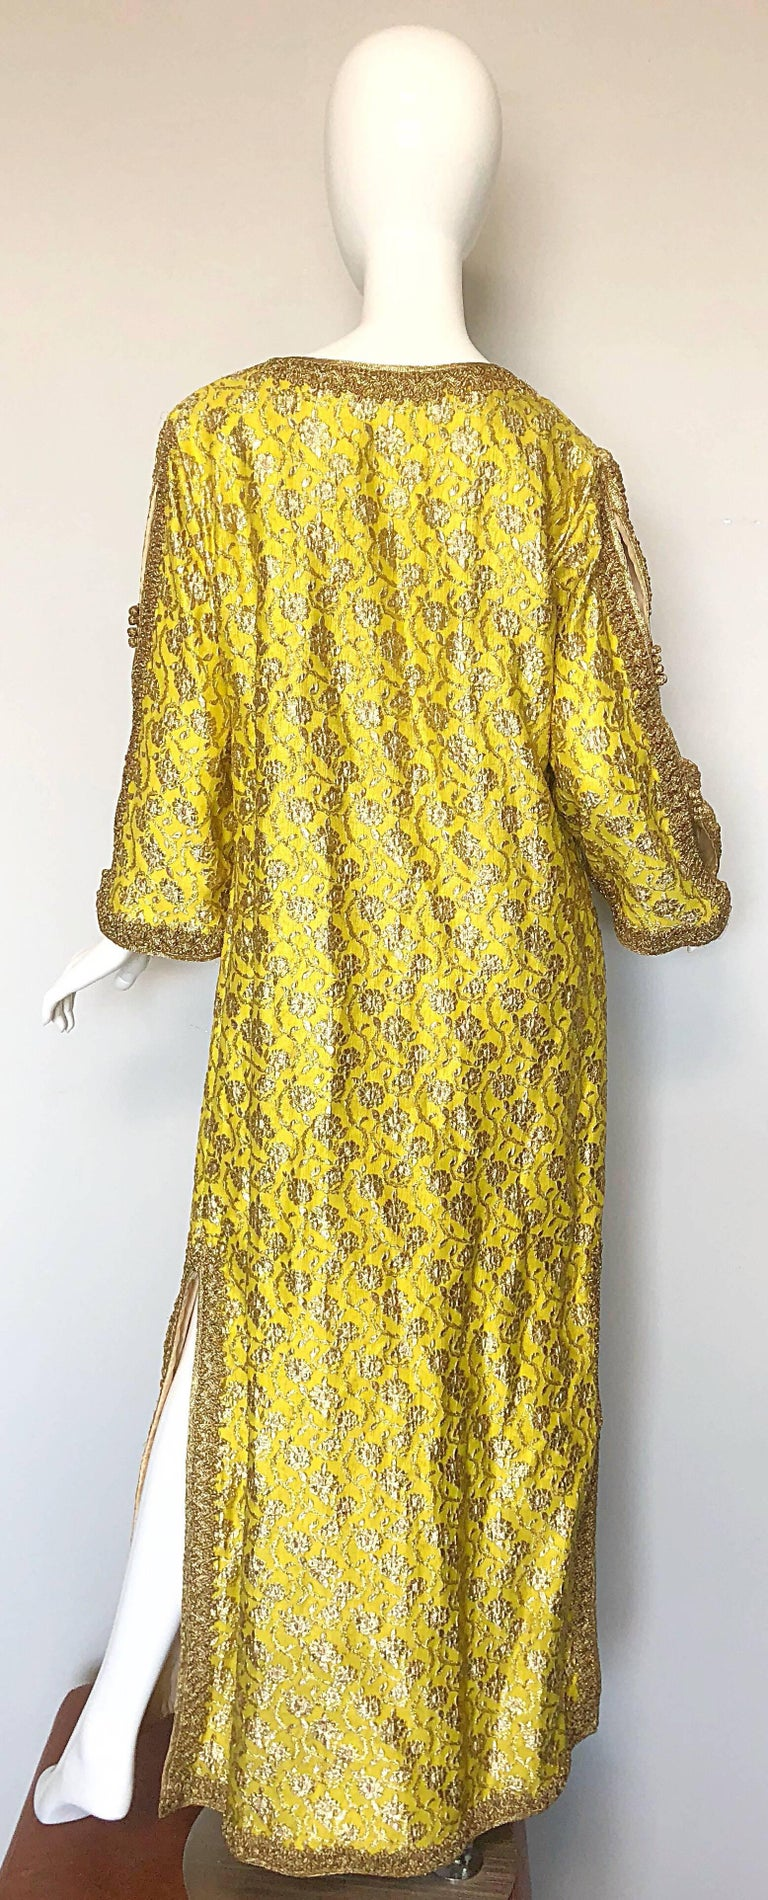 Women's Amazing 1960s Moroccan Couture Silk Brocade Yellow + Gold Caftan 60s Maxi Dress For Sale